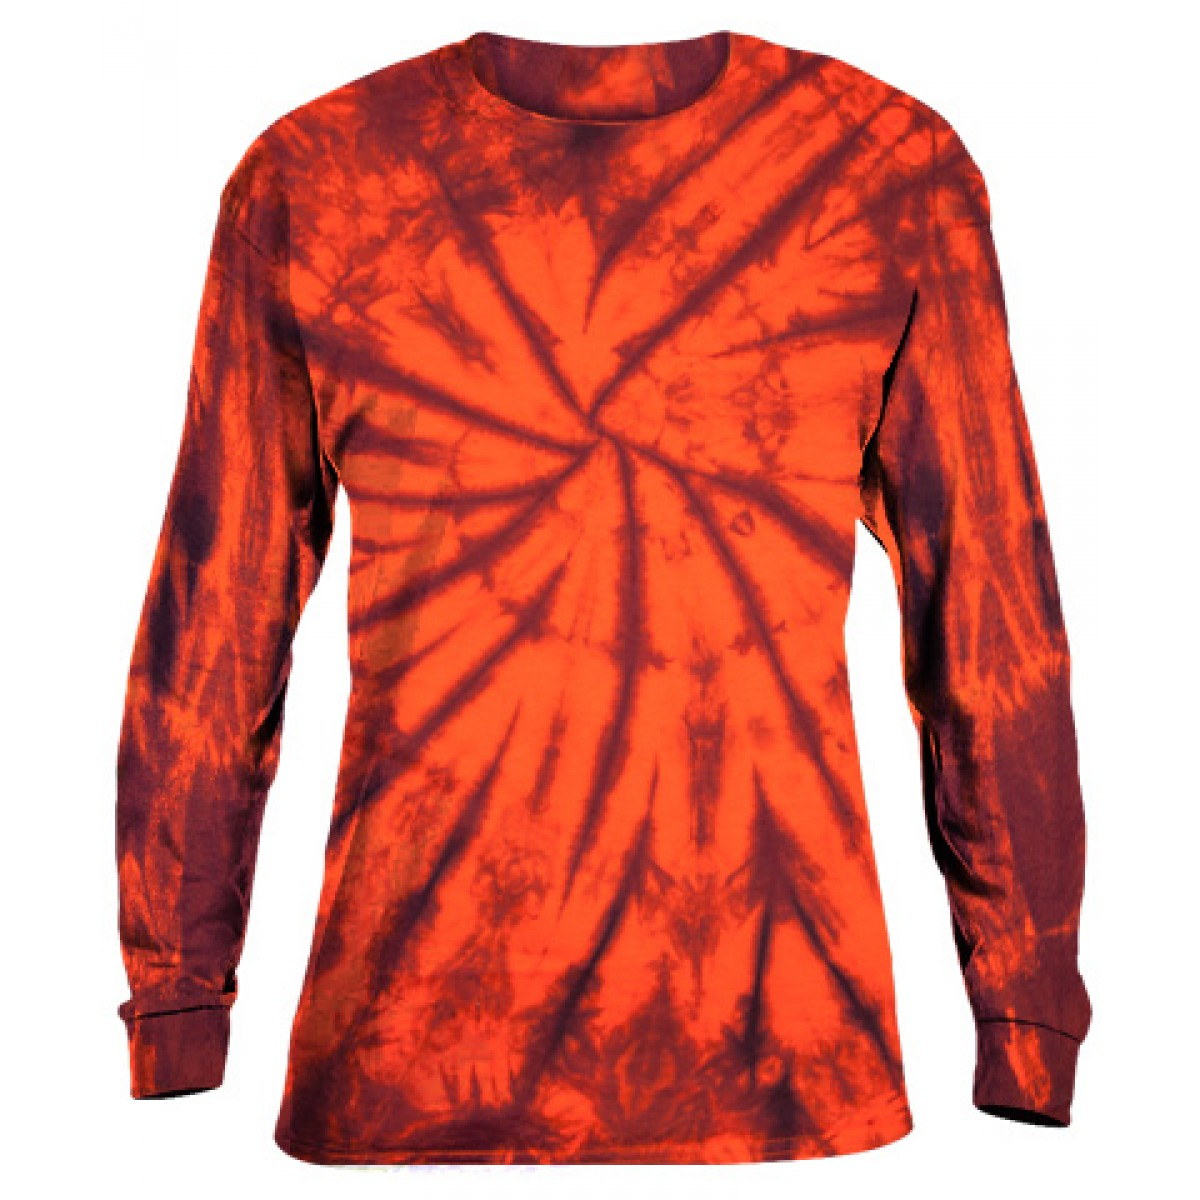 Tie-Dye Long Sleeve Shirt -Fall Orange -S